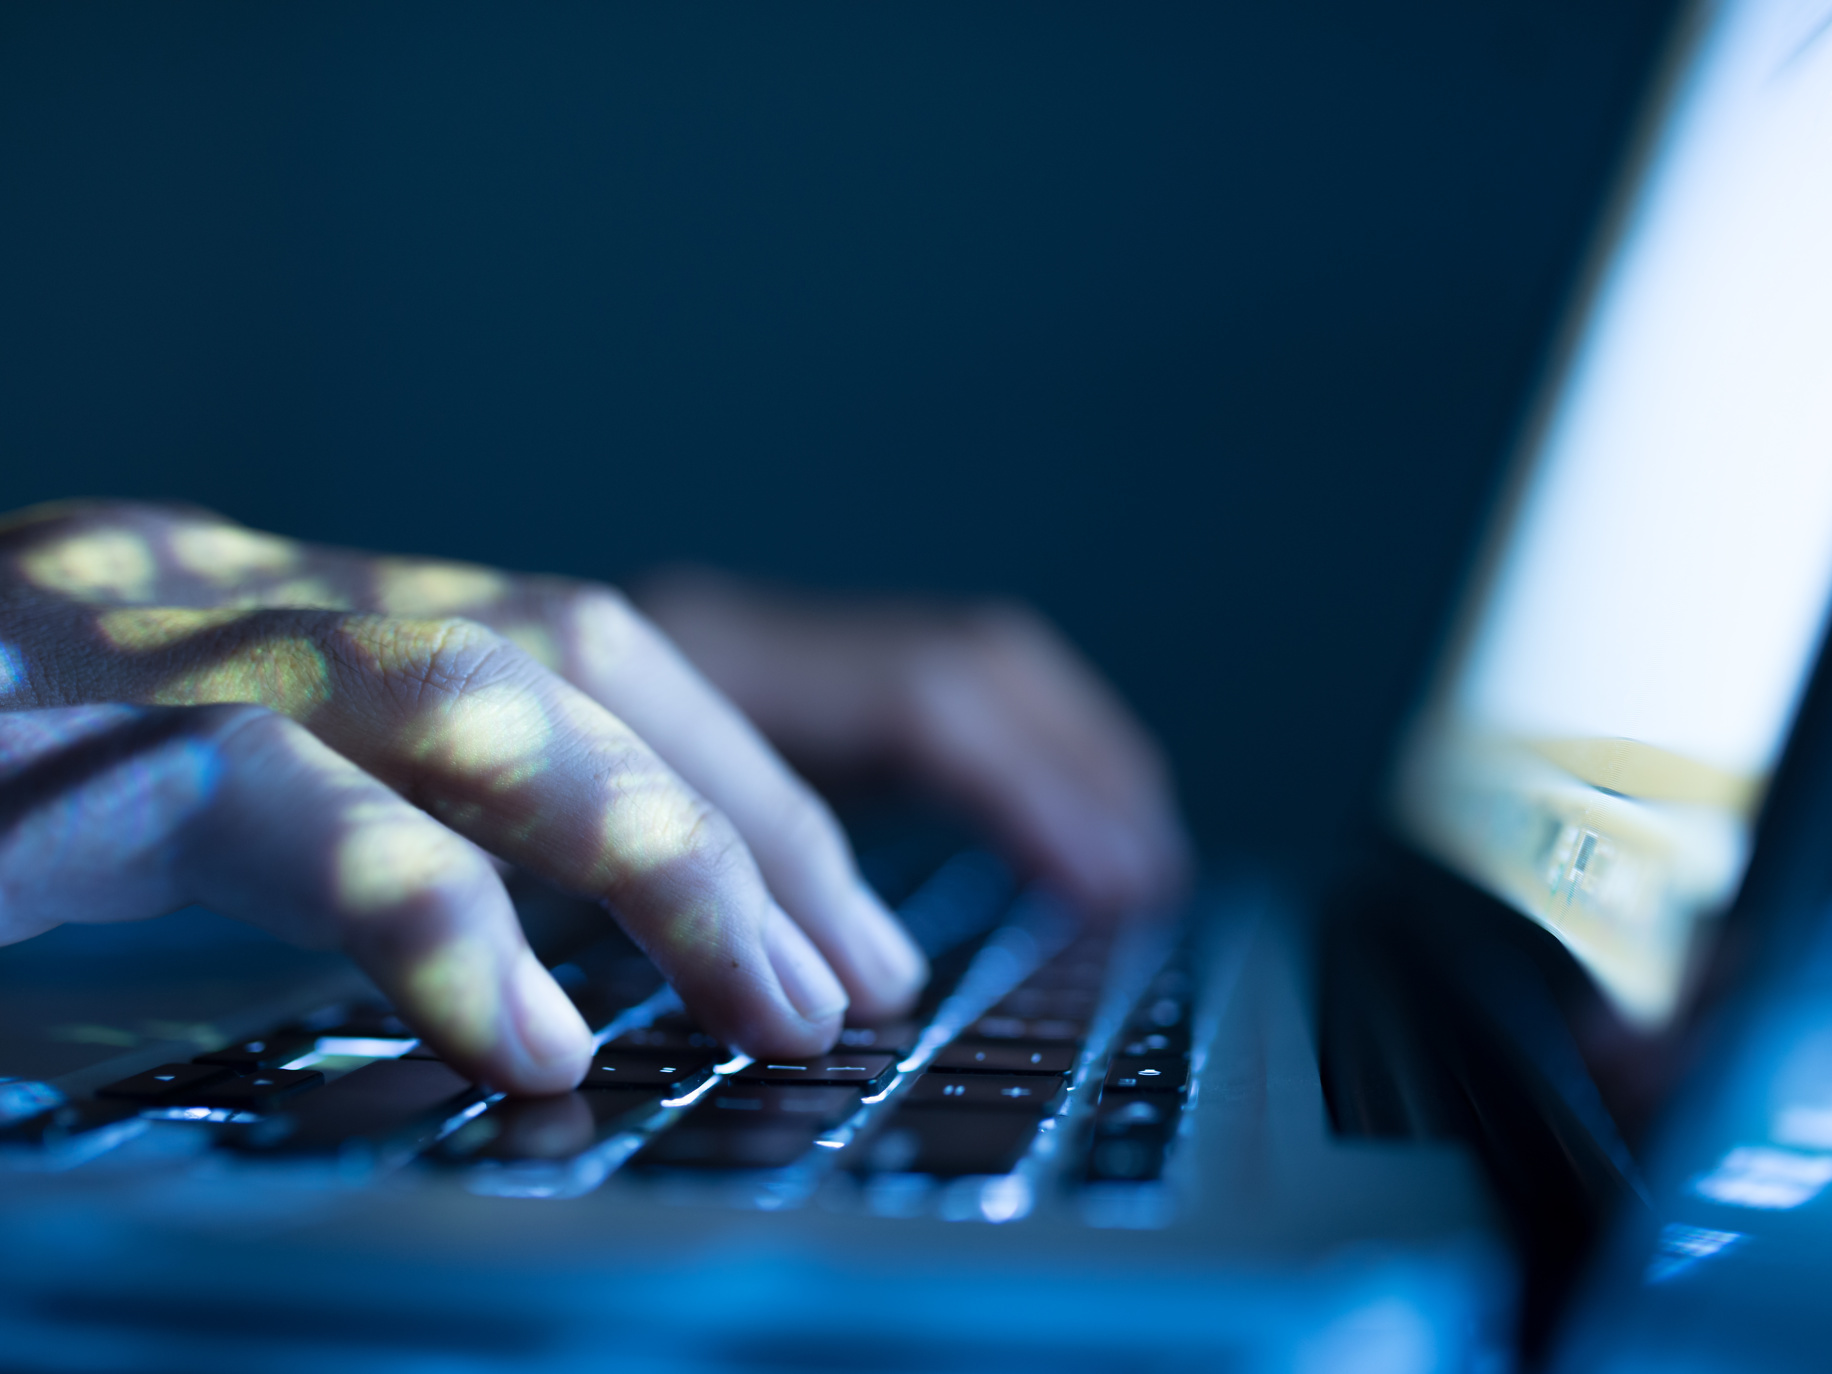 Scam Victims Blackmailed With Adult Content – Which One?  New